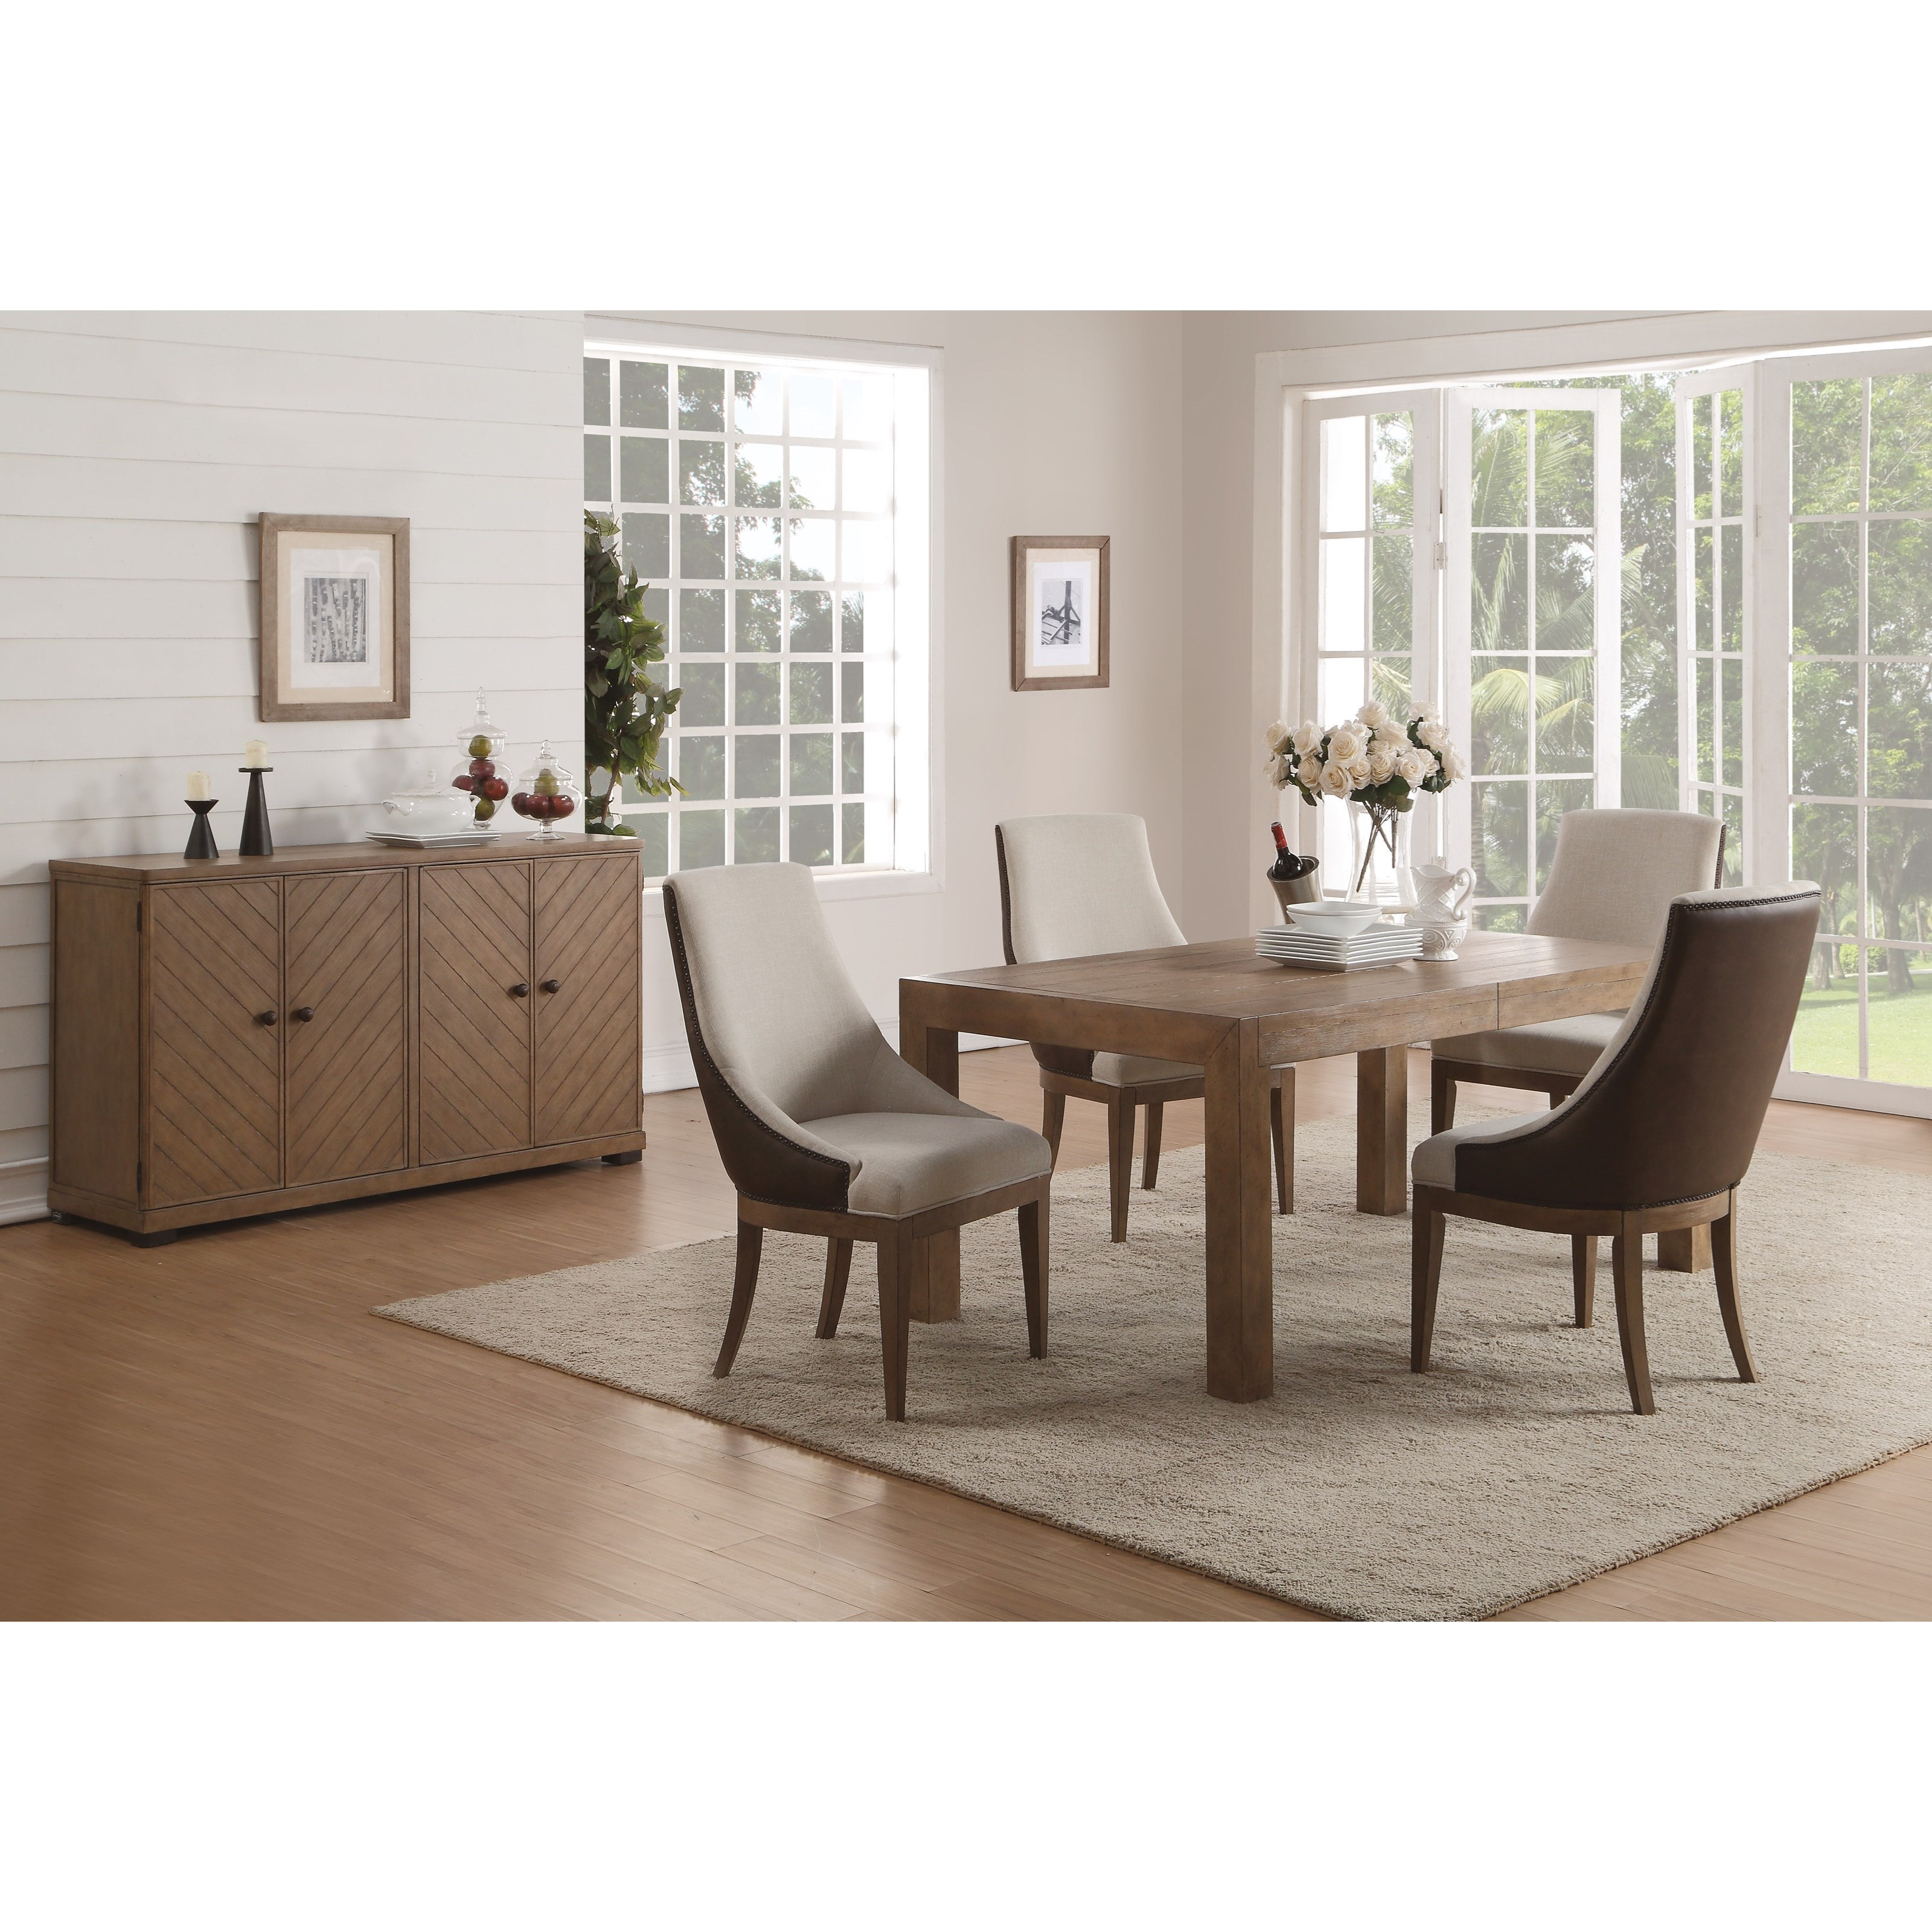 Flexsteel Wynwood Collection Carmen Formal Dining Room Group - Item Number: W1146 Dining Room Group 13